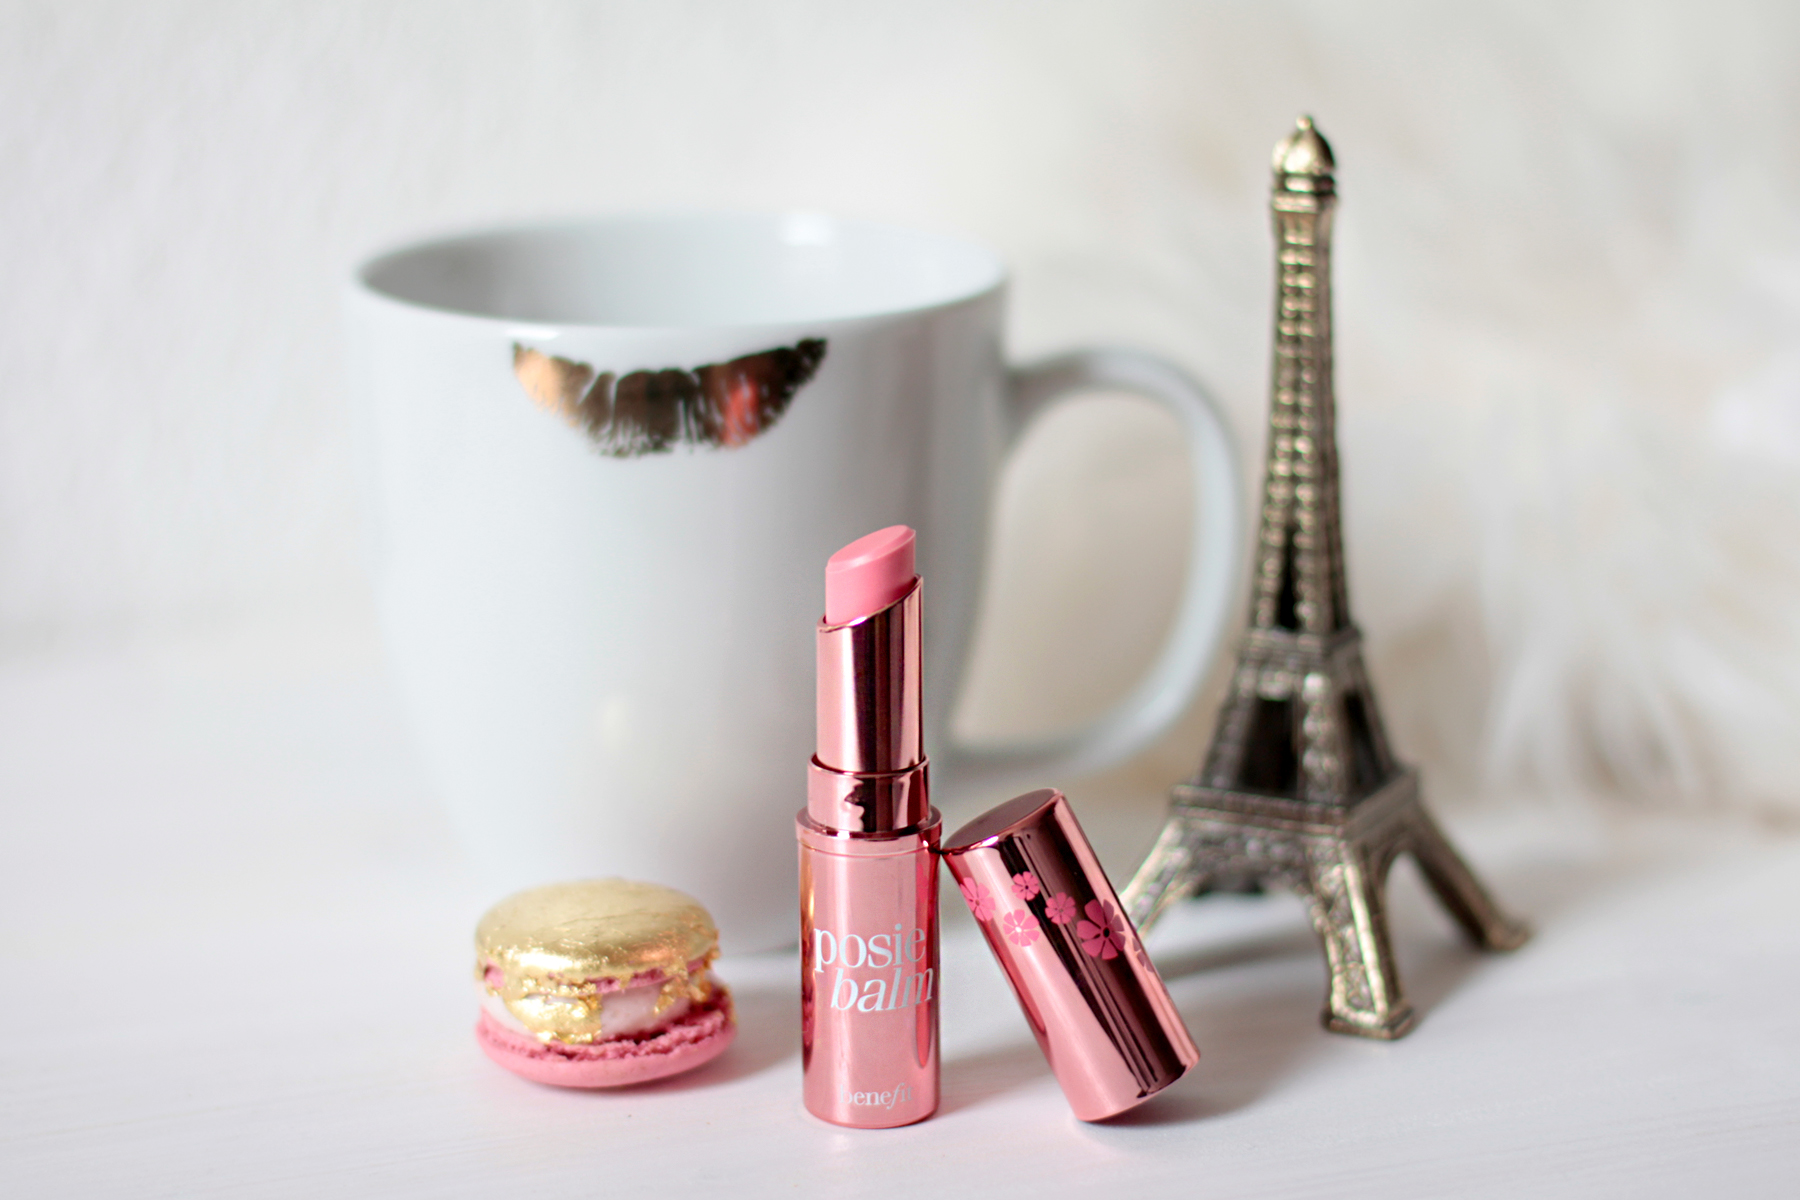 beauty favourites december lancome kerastase shiseido loreal benefit lipstick care glitter nailpolish rouge highlight hair perfume luxury cats & dogs beautyblogger ricarda schernus blog 4